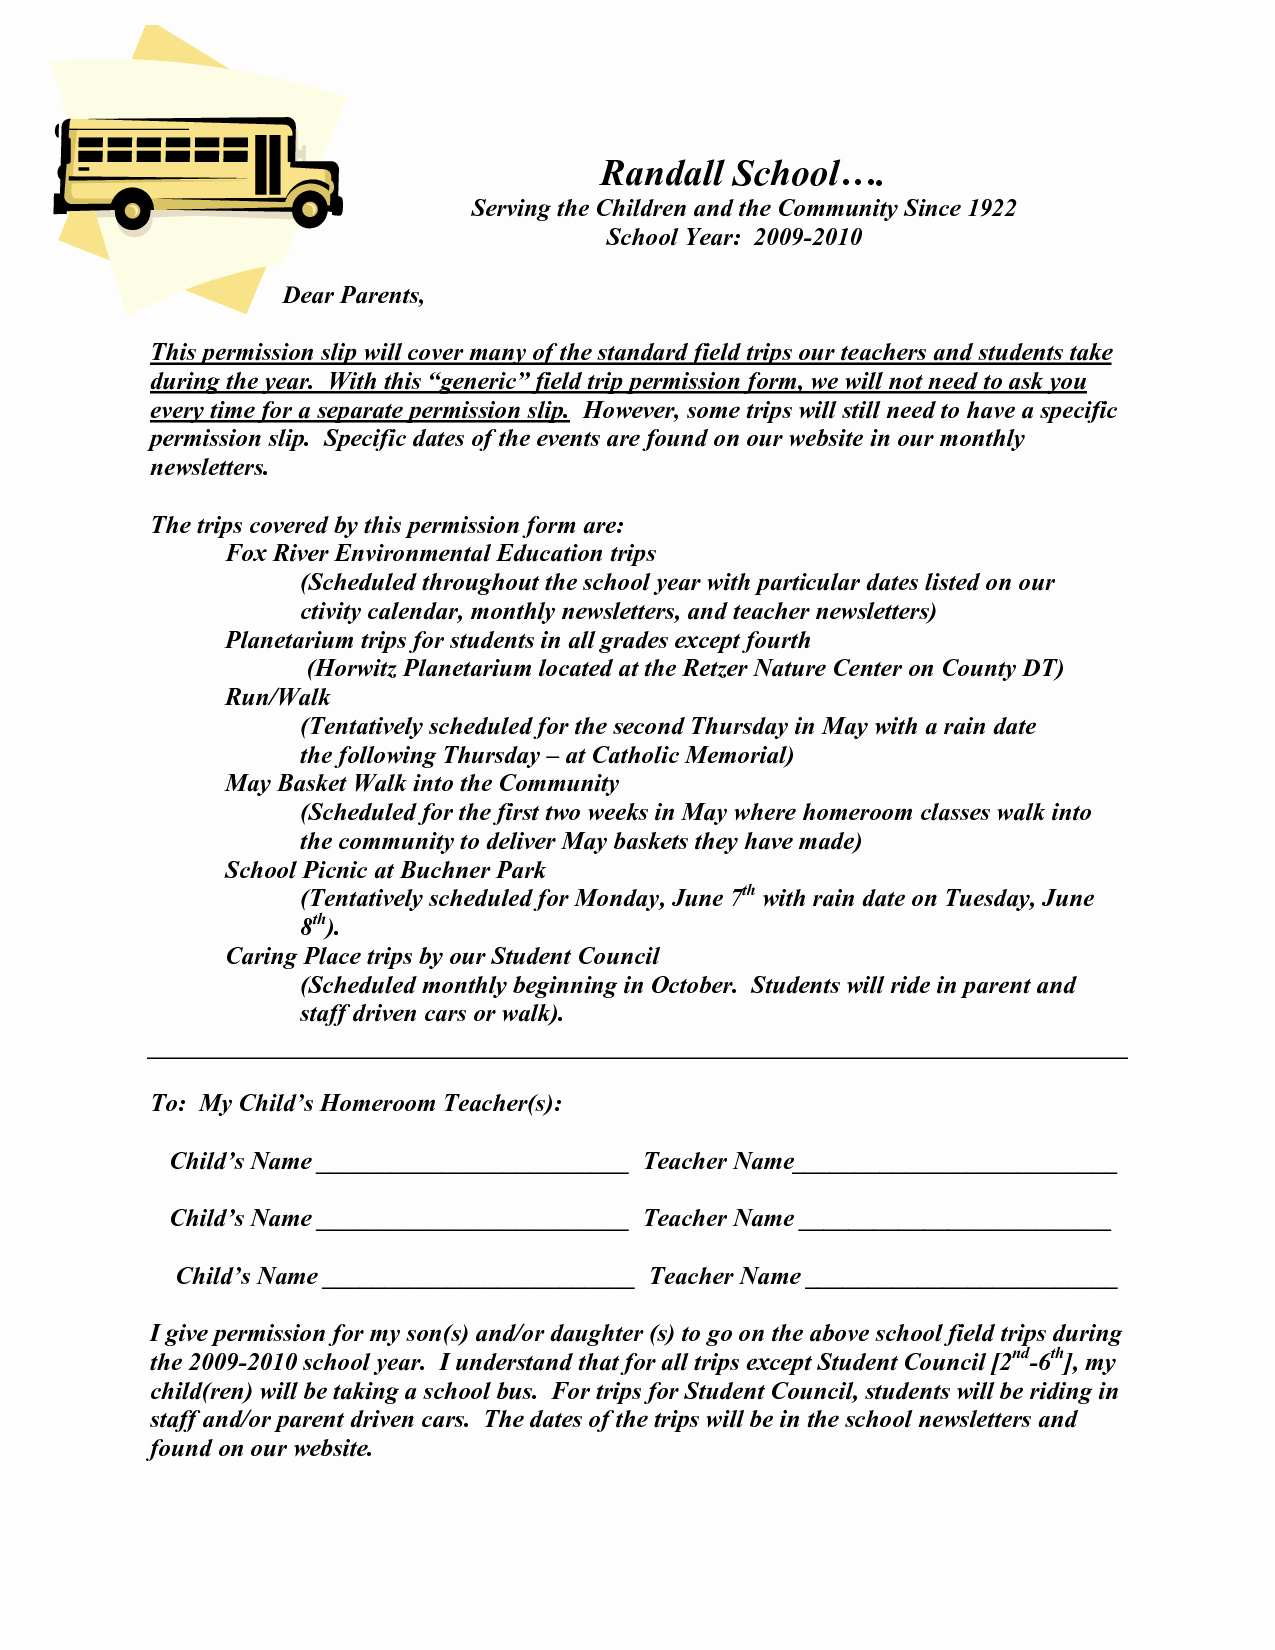 Field Trip form Template Awesome Permission Slip Template